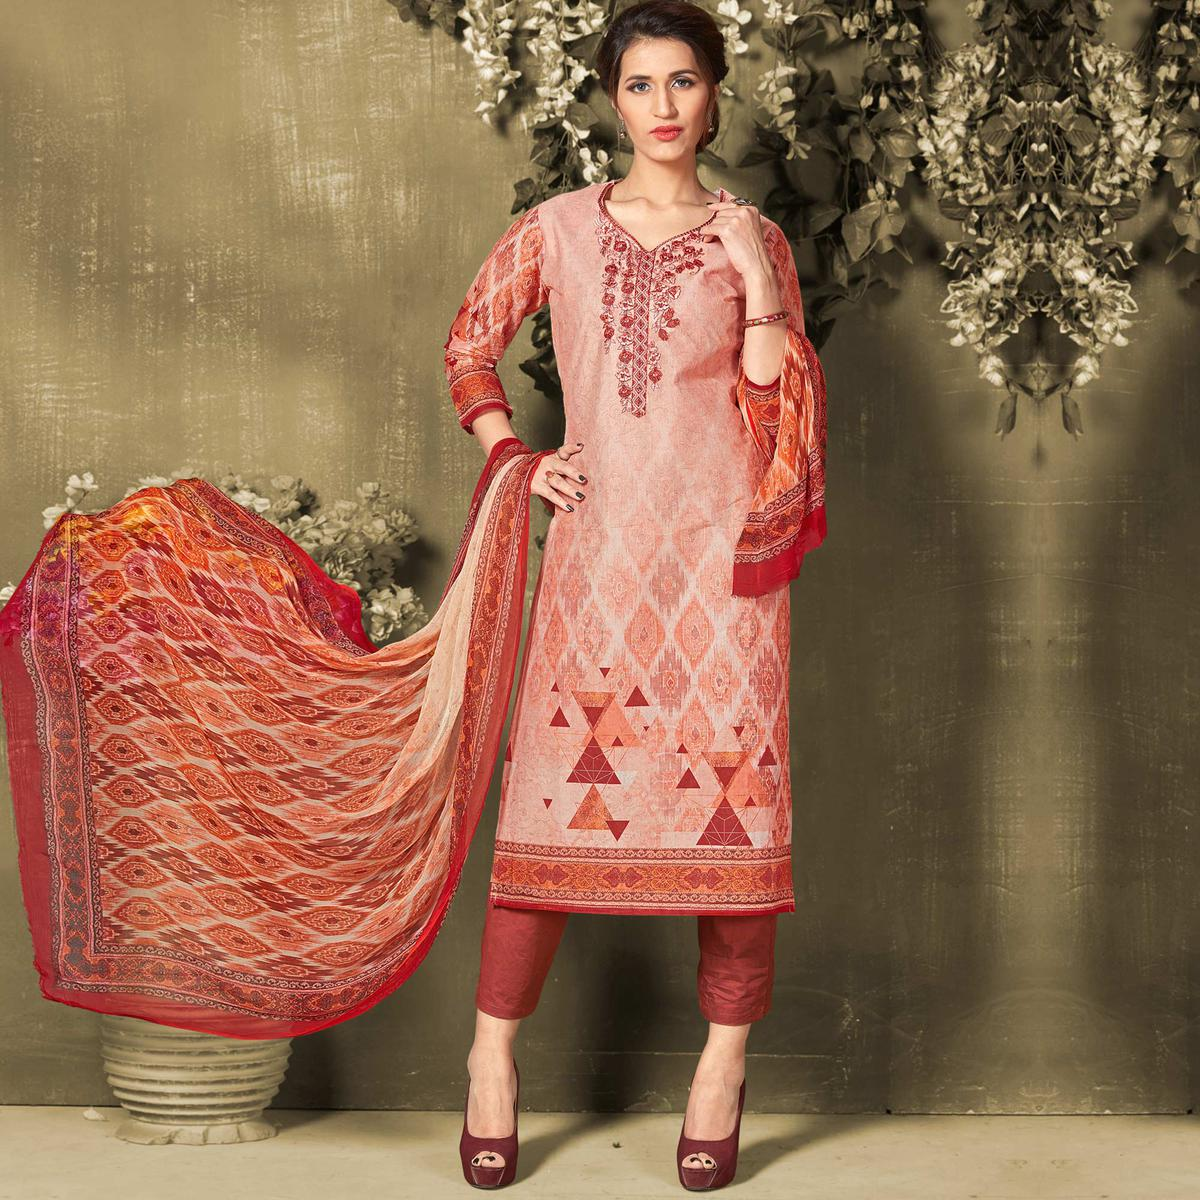 Blooming Light Red Colored Casual Wear Digital Printed Cotton Salwar Suit